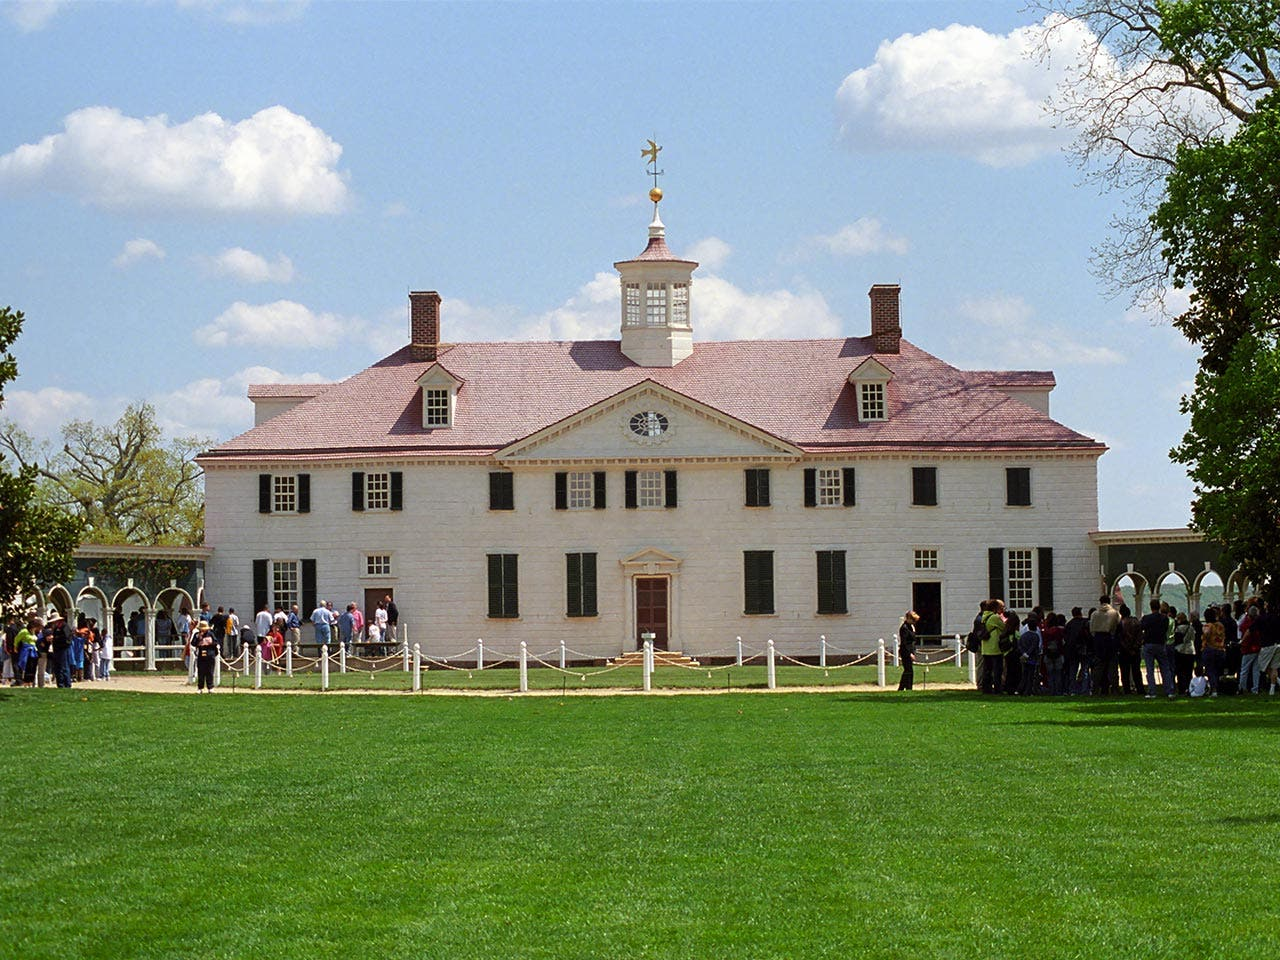 House of George Washington | Ffooter/Shutterstock.com